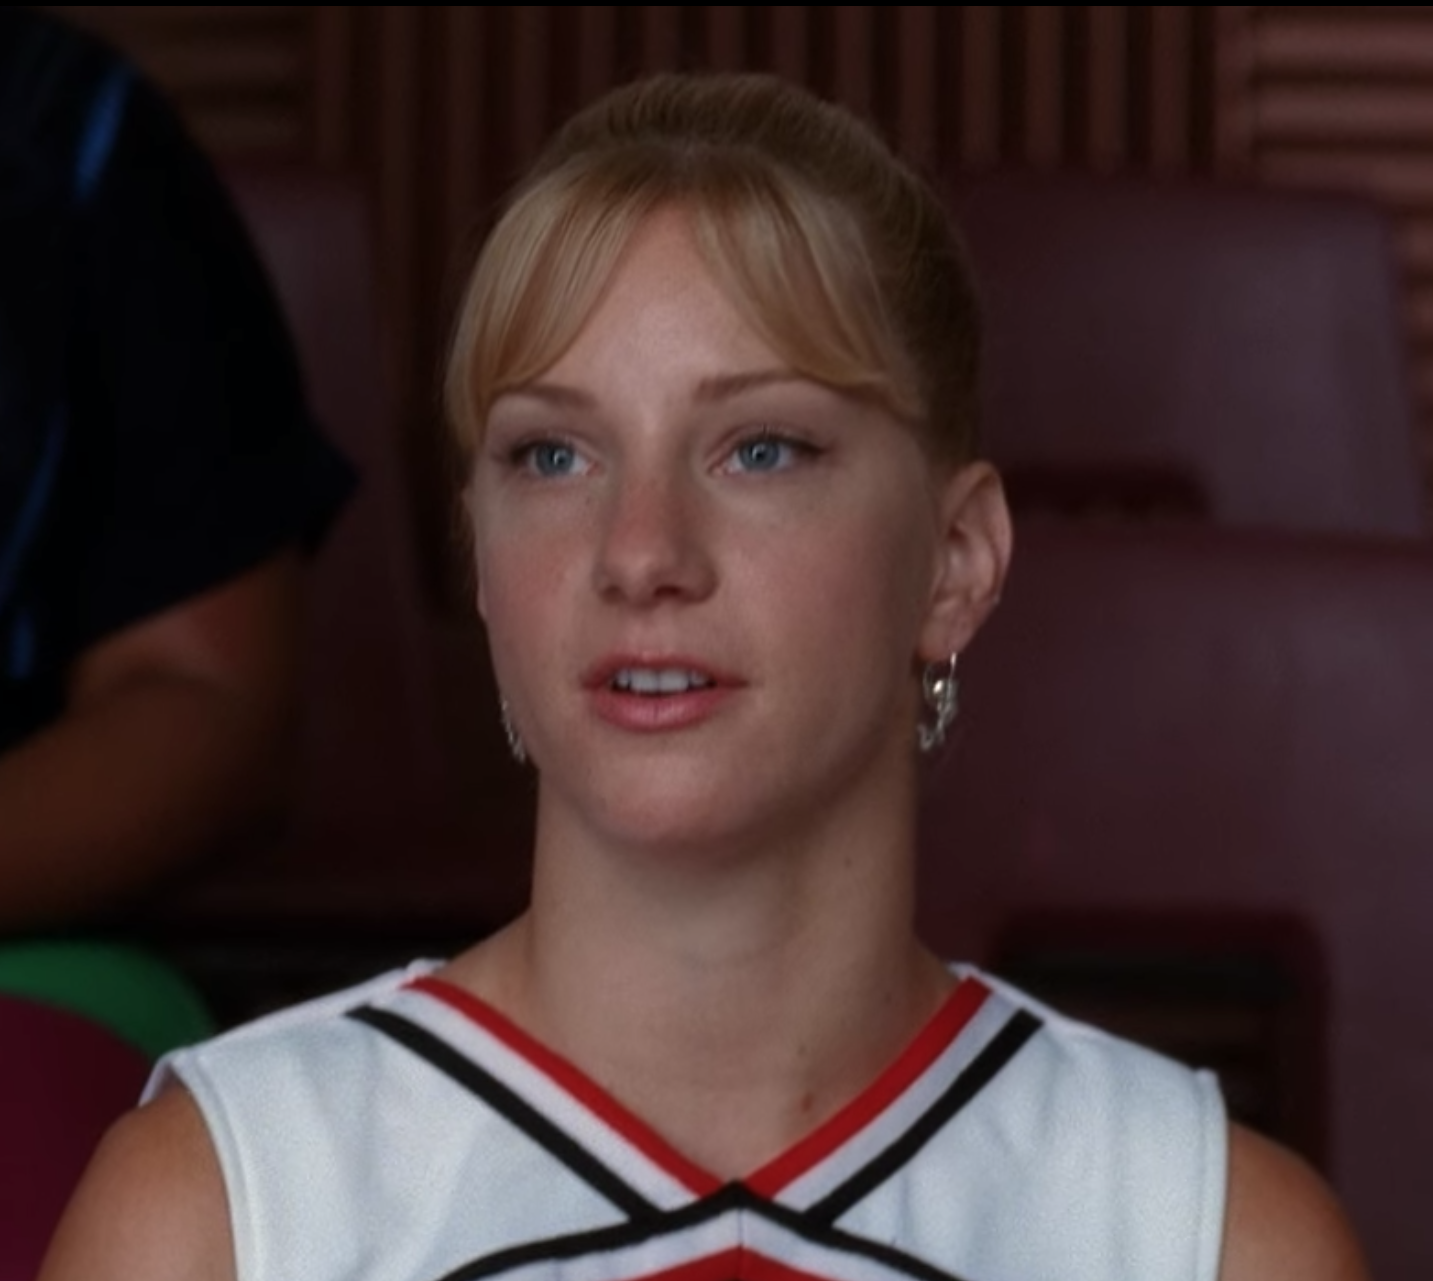 A close up of Brittany S. Pierce as she wears her red, black, and white striped cheerleading uniform top.